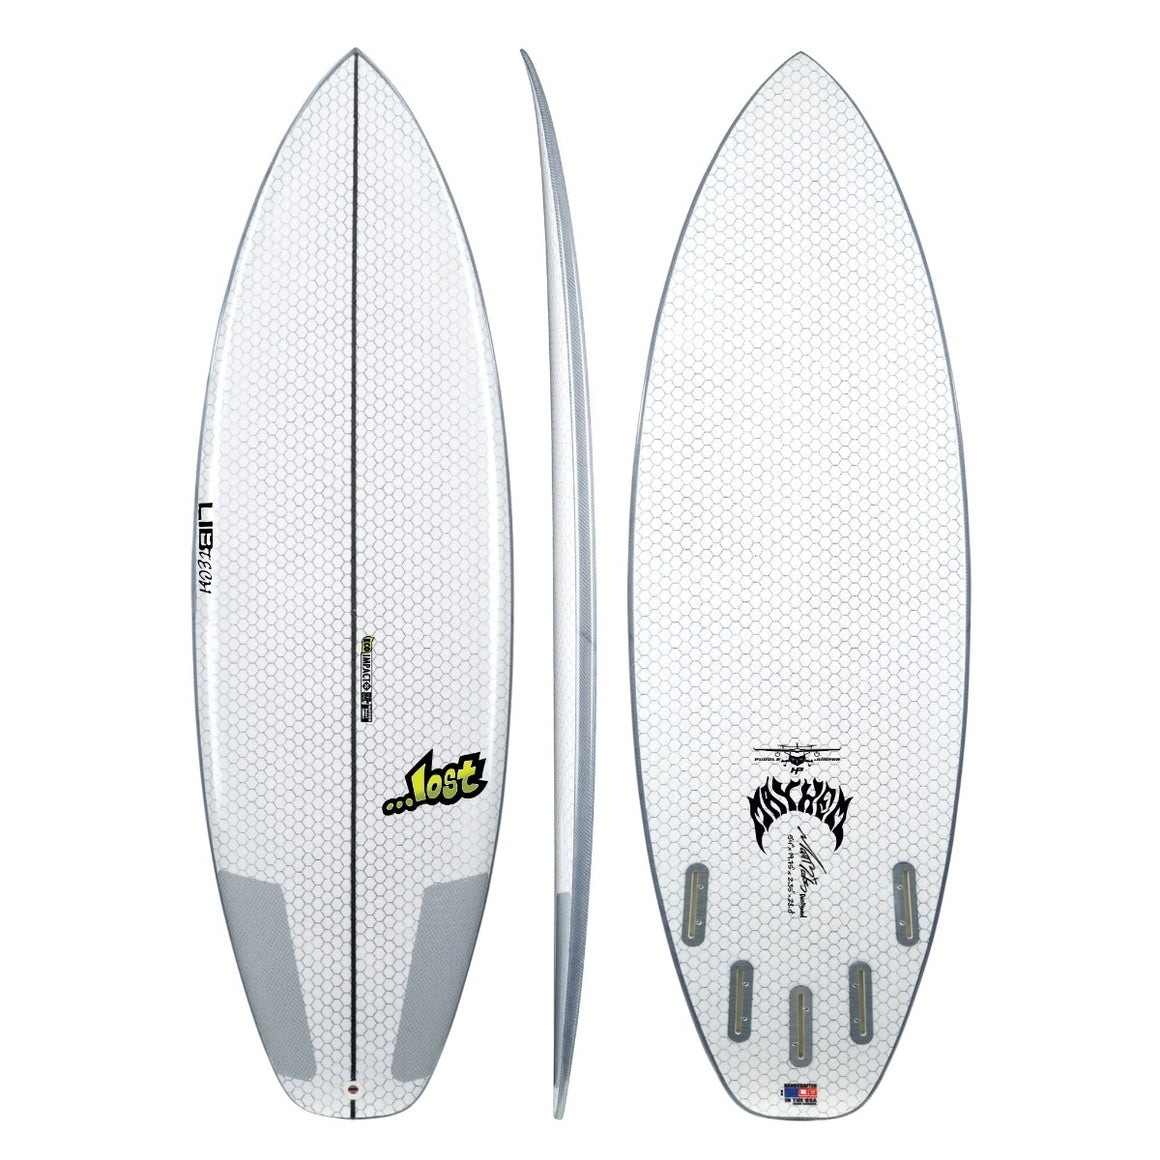 Libtech - Lost Puddle Jumper HP 5'10 (FCSII Compatible)